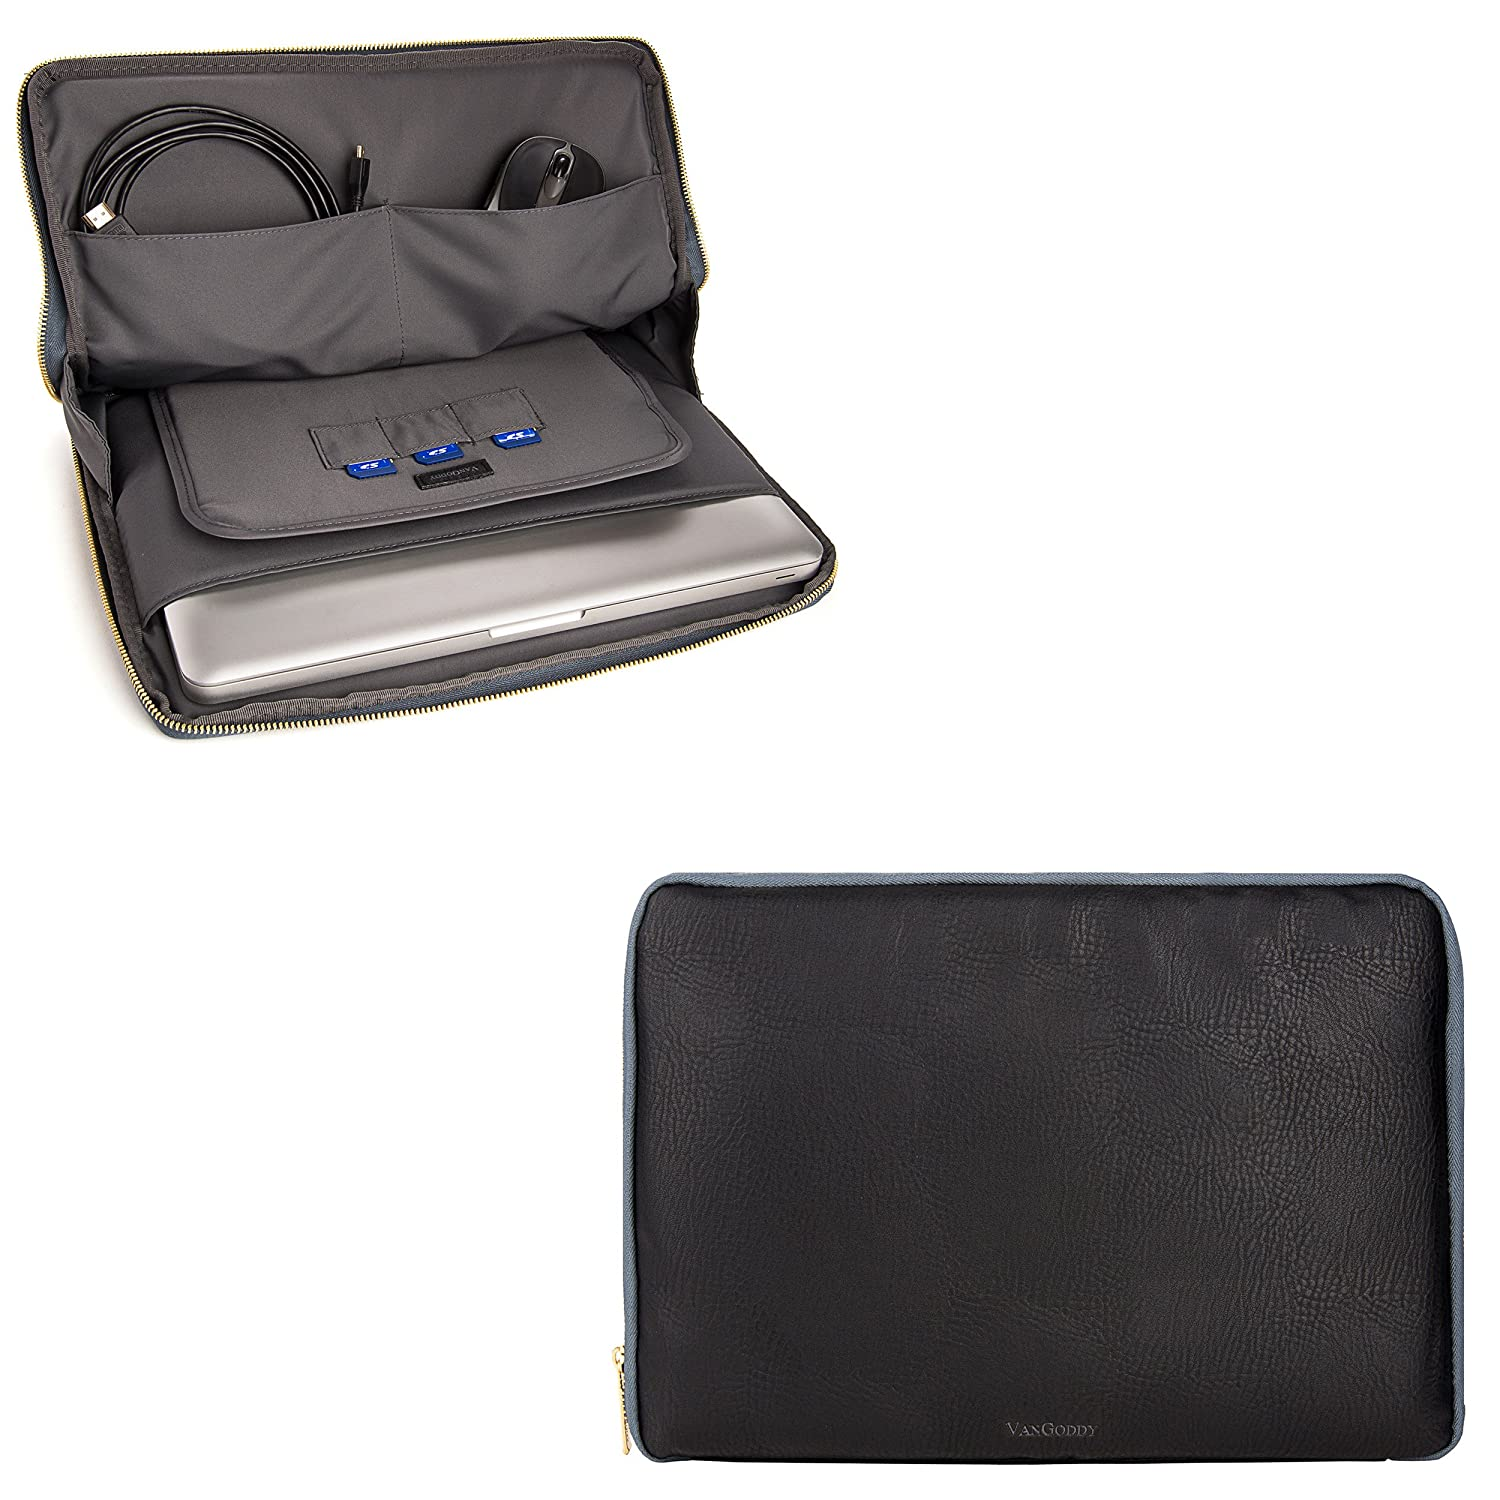 Amazon.com: Universal Tablet Sleeve Pouch Bag Carrying Case ...